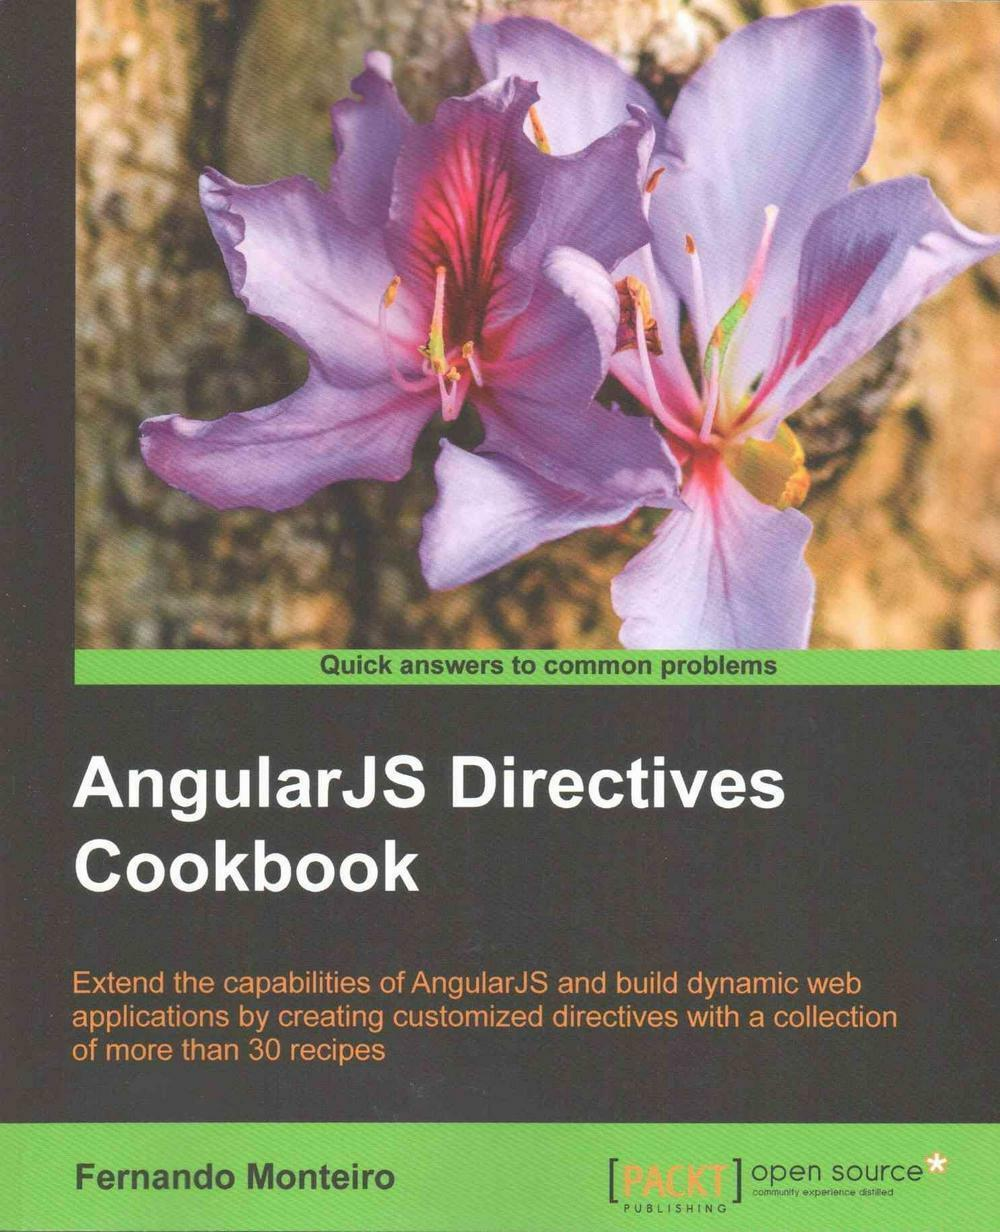 AngularJS Directives Cookbook by Fernando Monteiro (English) Paperback Book Free |